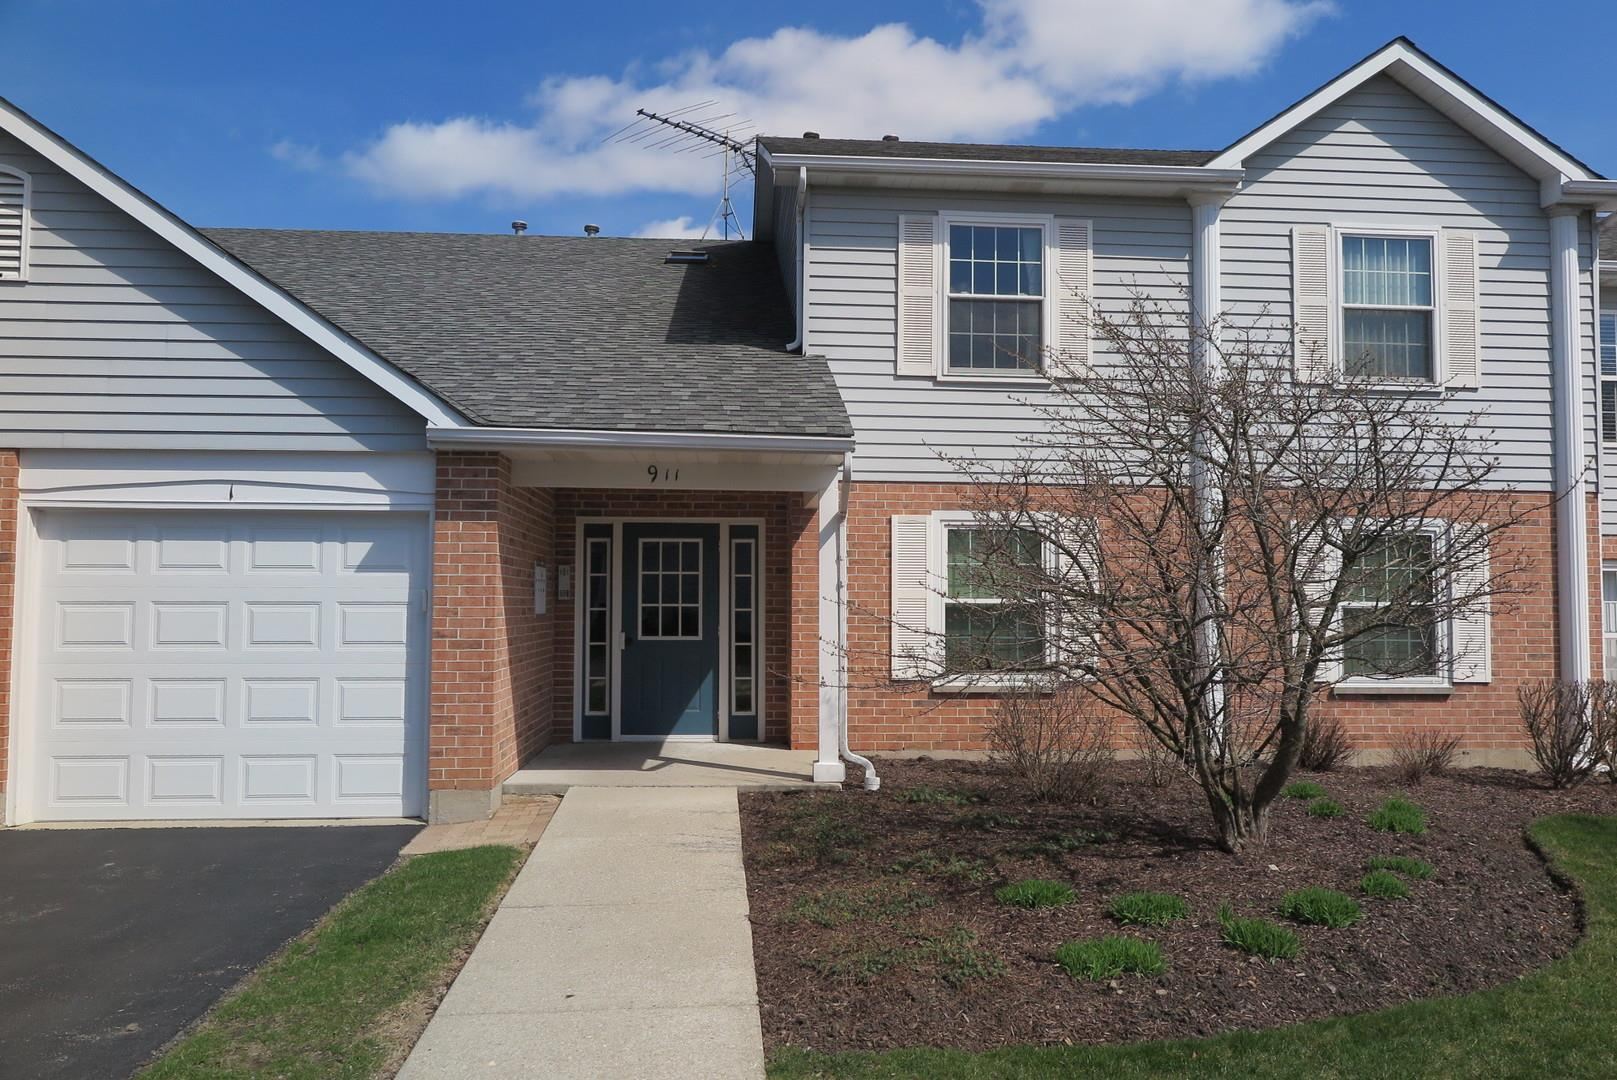 911 Golf Course Road #1, Crystal Lake, IL 60014 - #: 10688647